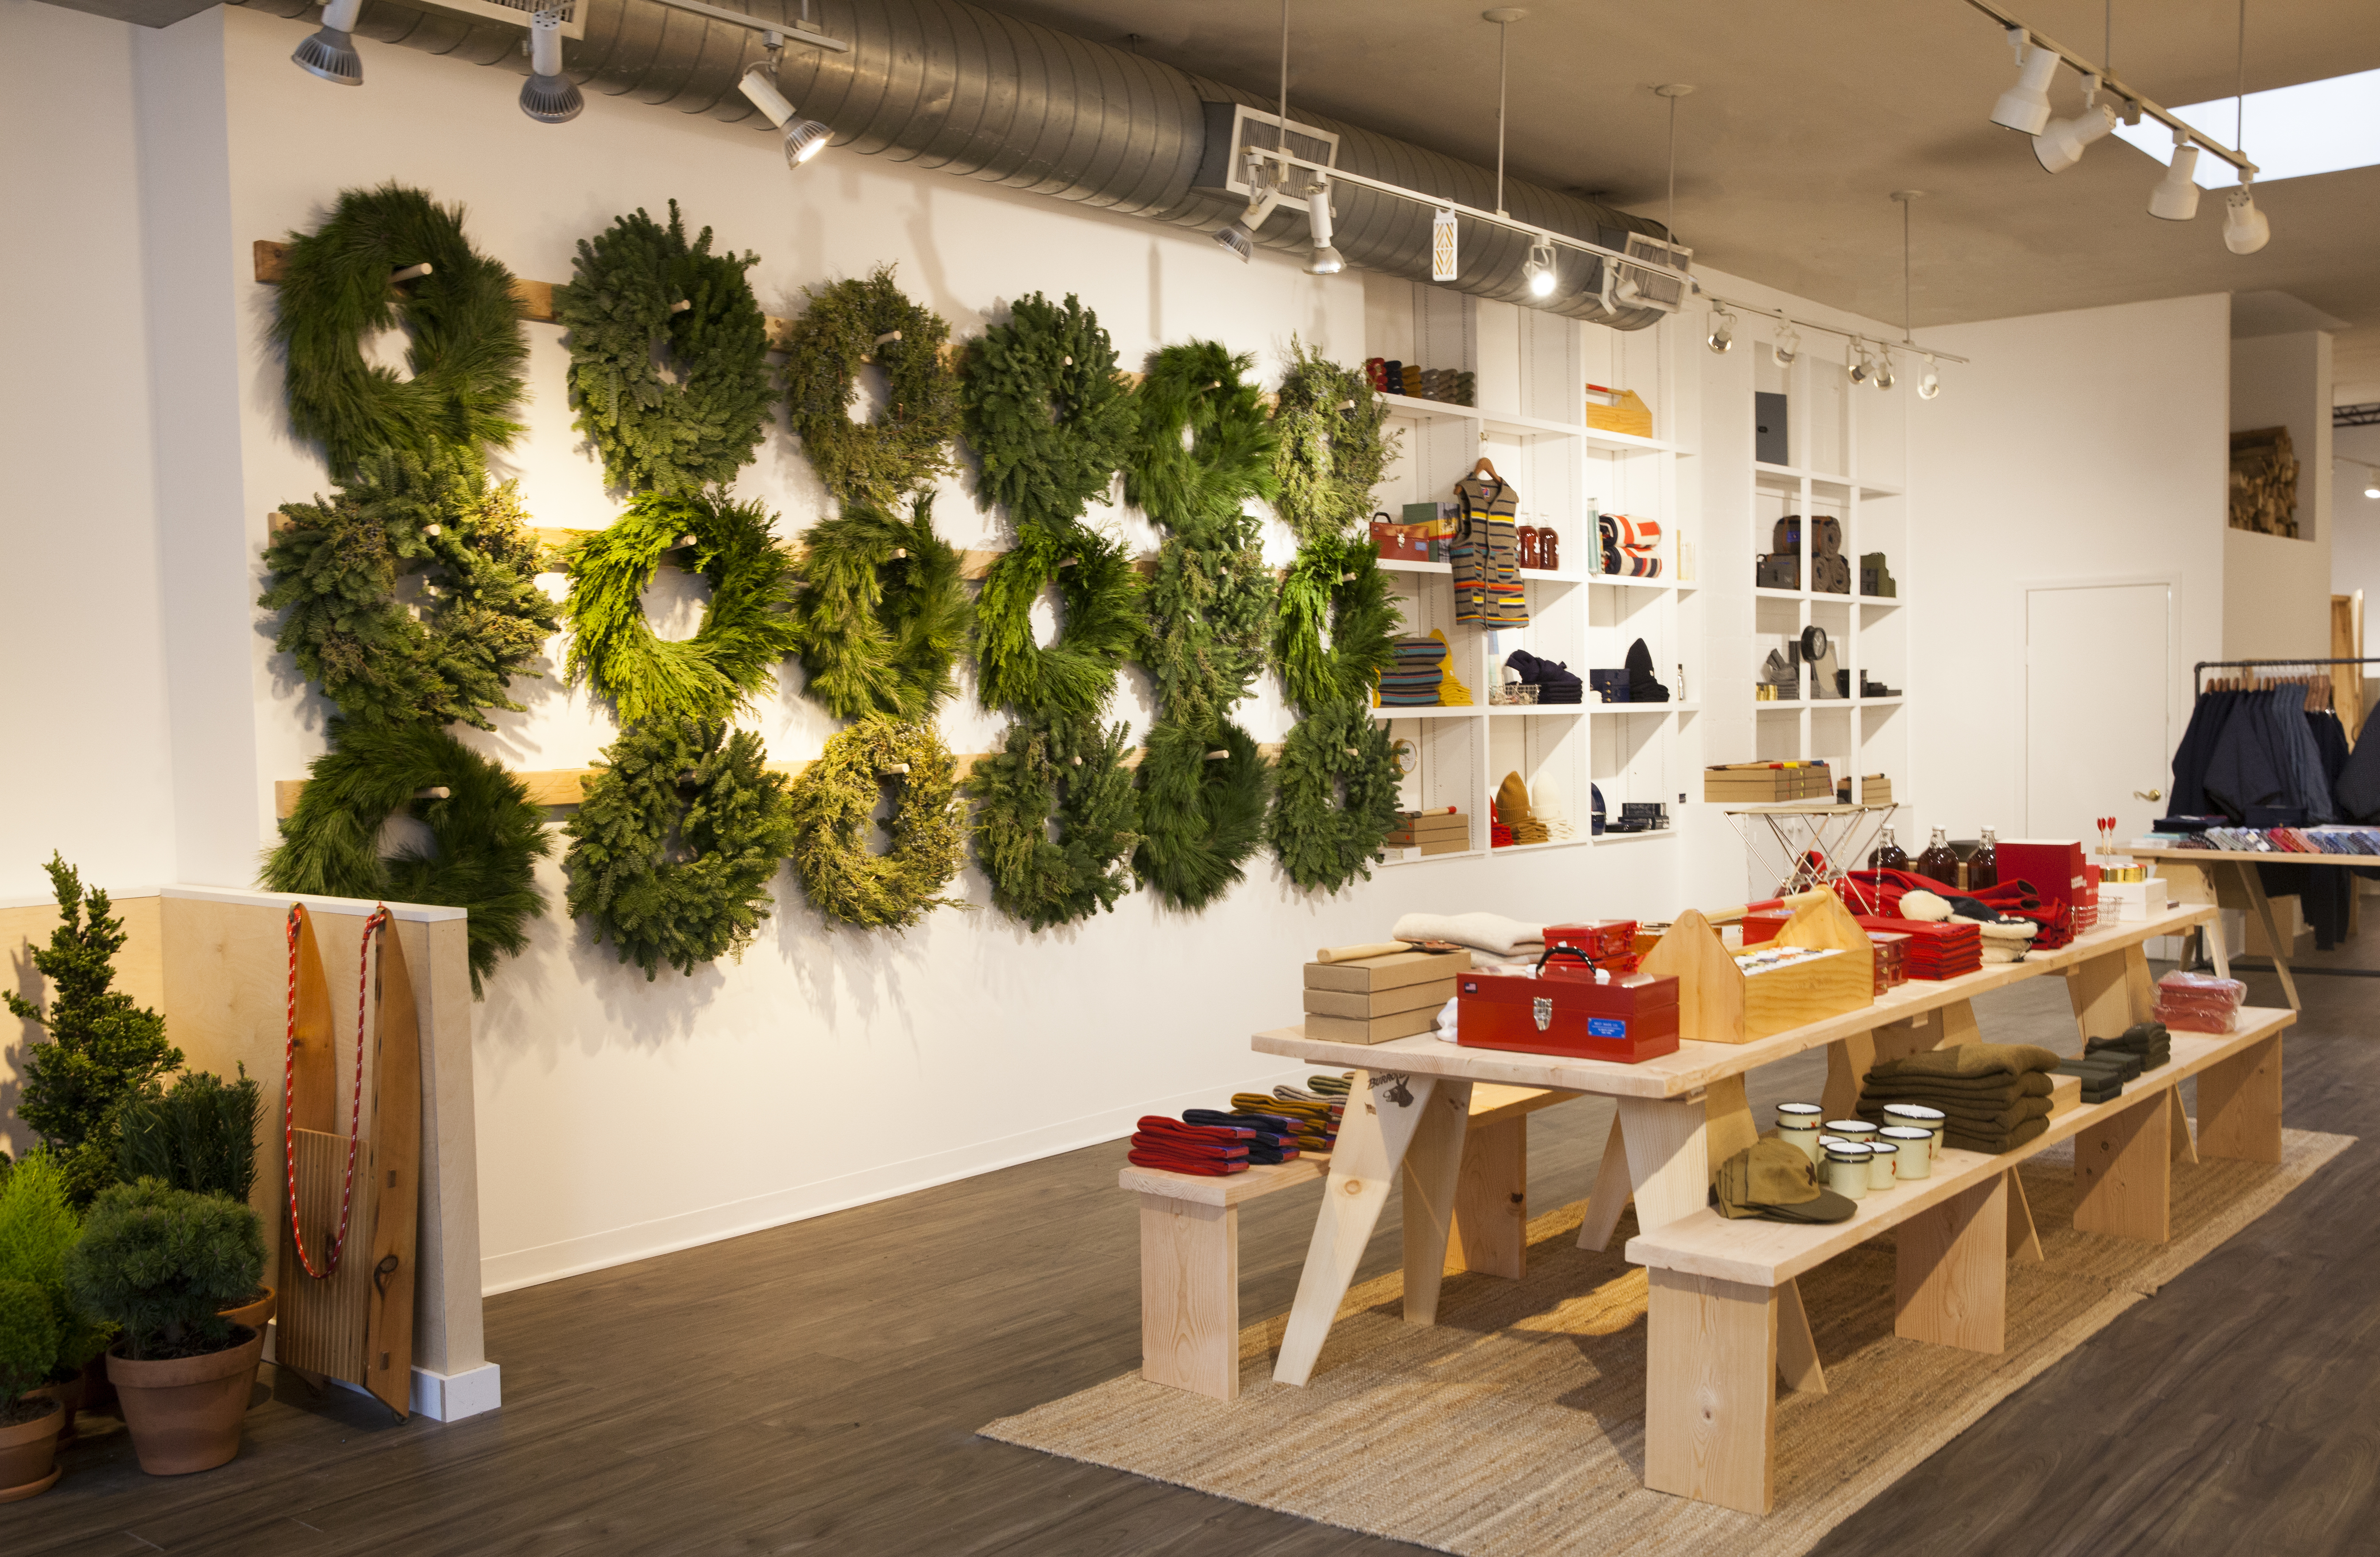 NYC's best alternative holiday markets and coolest pop-up shops of